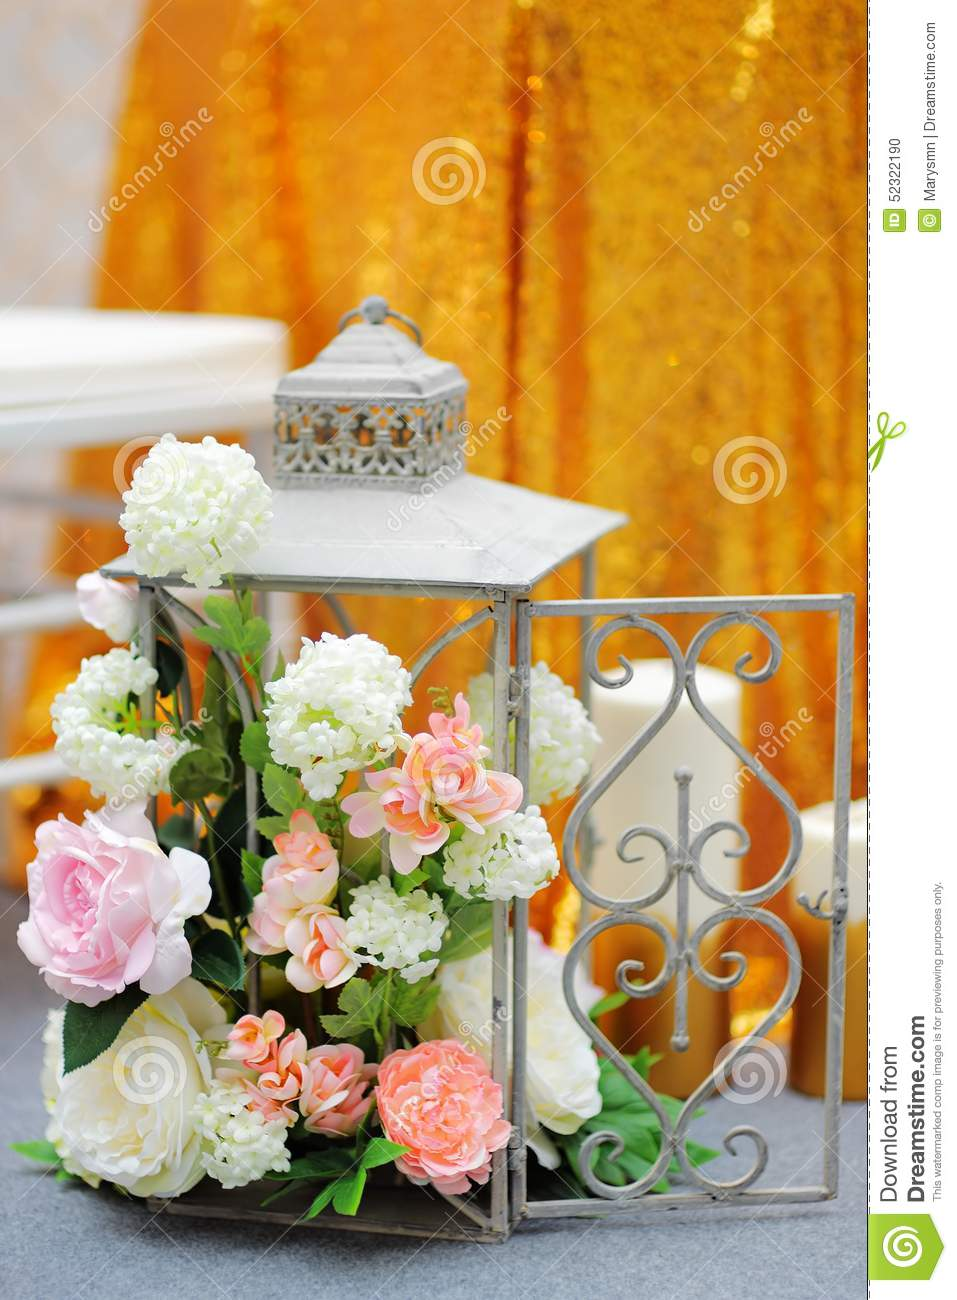 cage avec des fleurs comme d coration sur la partie photo stock image 52322190. Black Bedroom Furniture Sets. Home Design Ideas